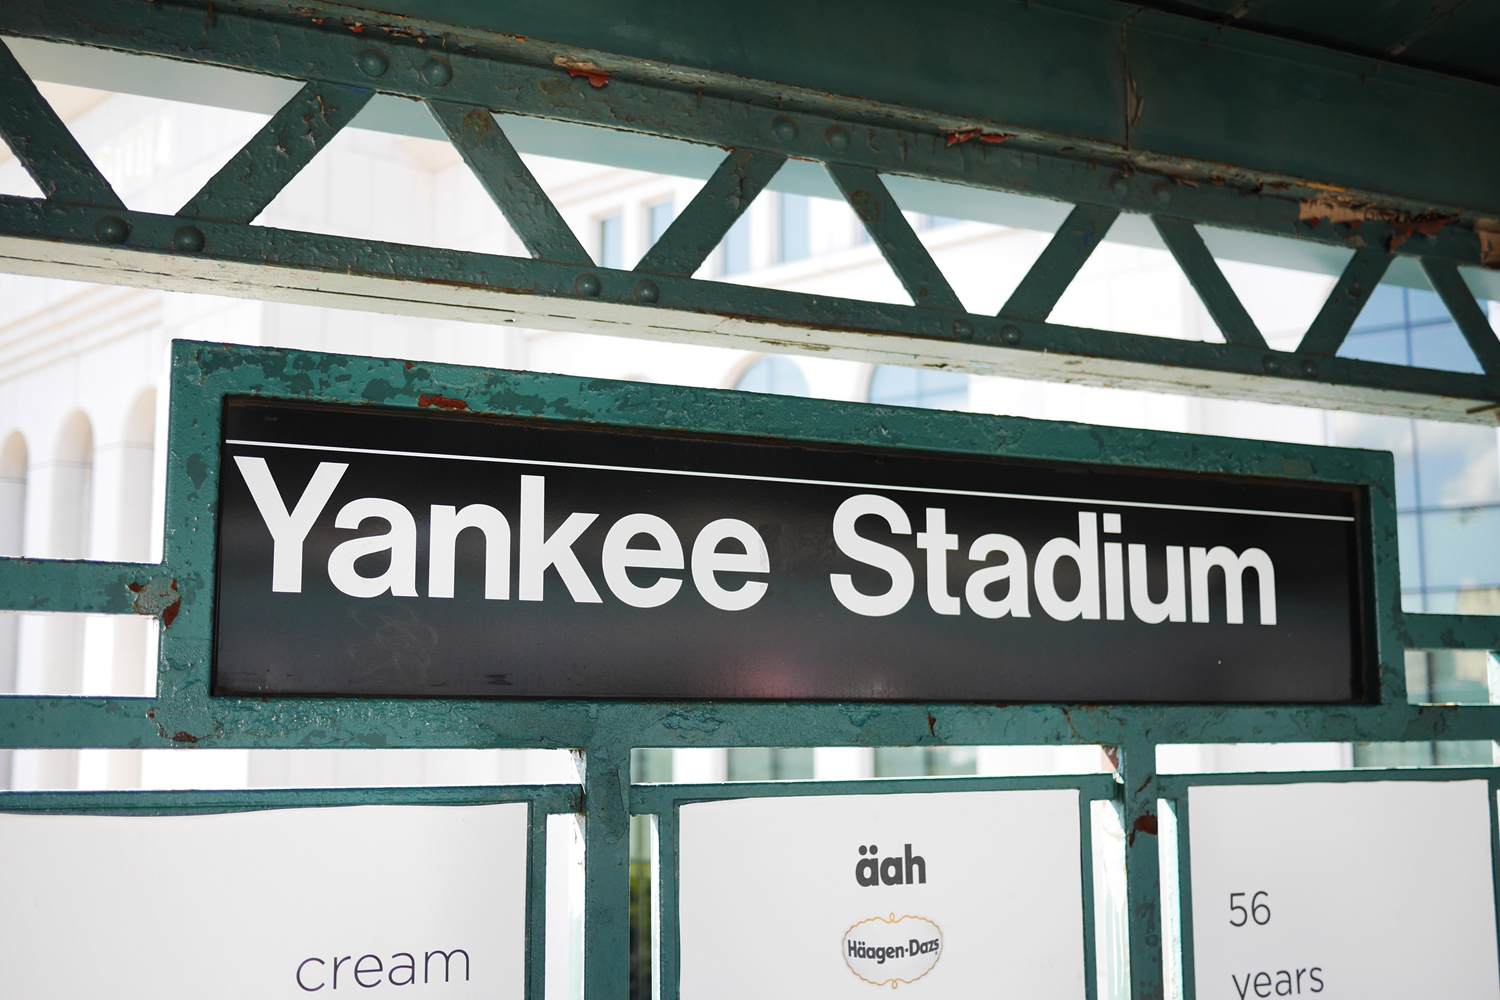 Yankee Stadium Station